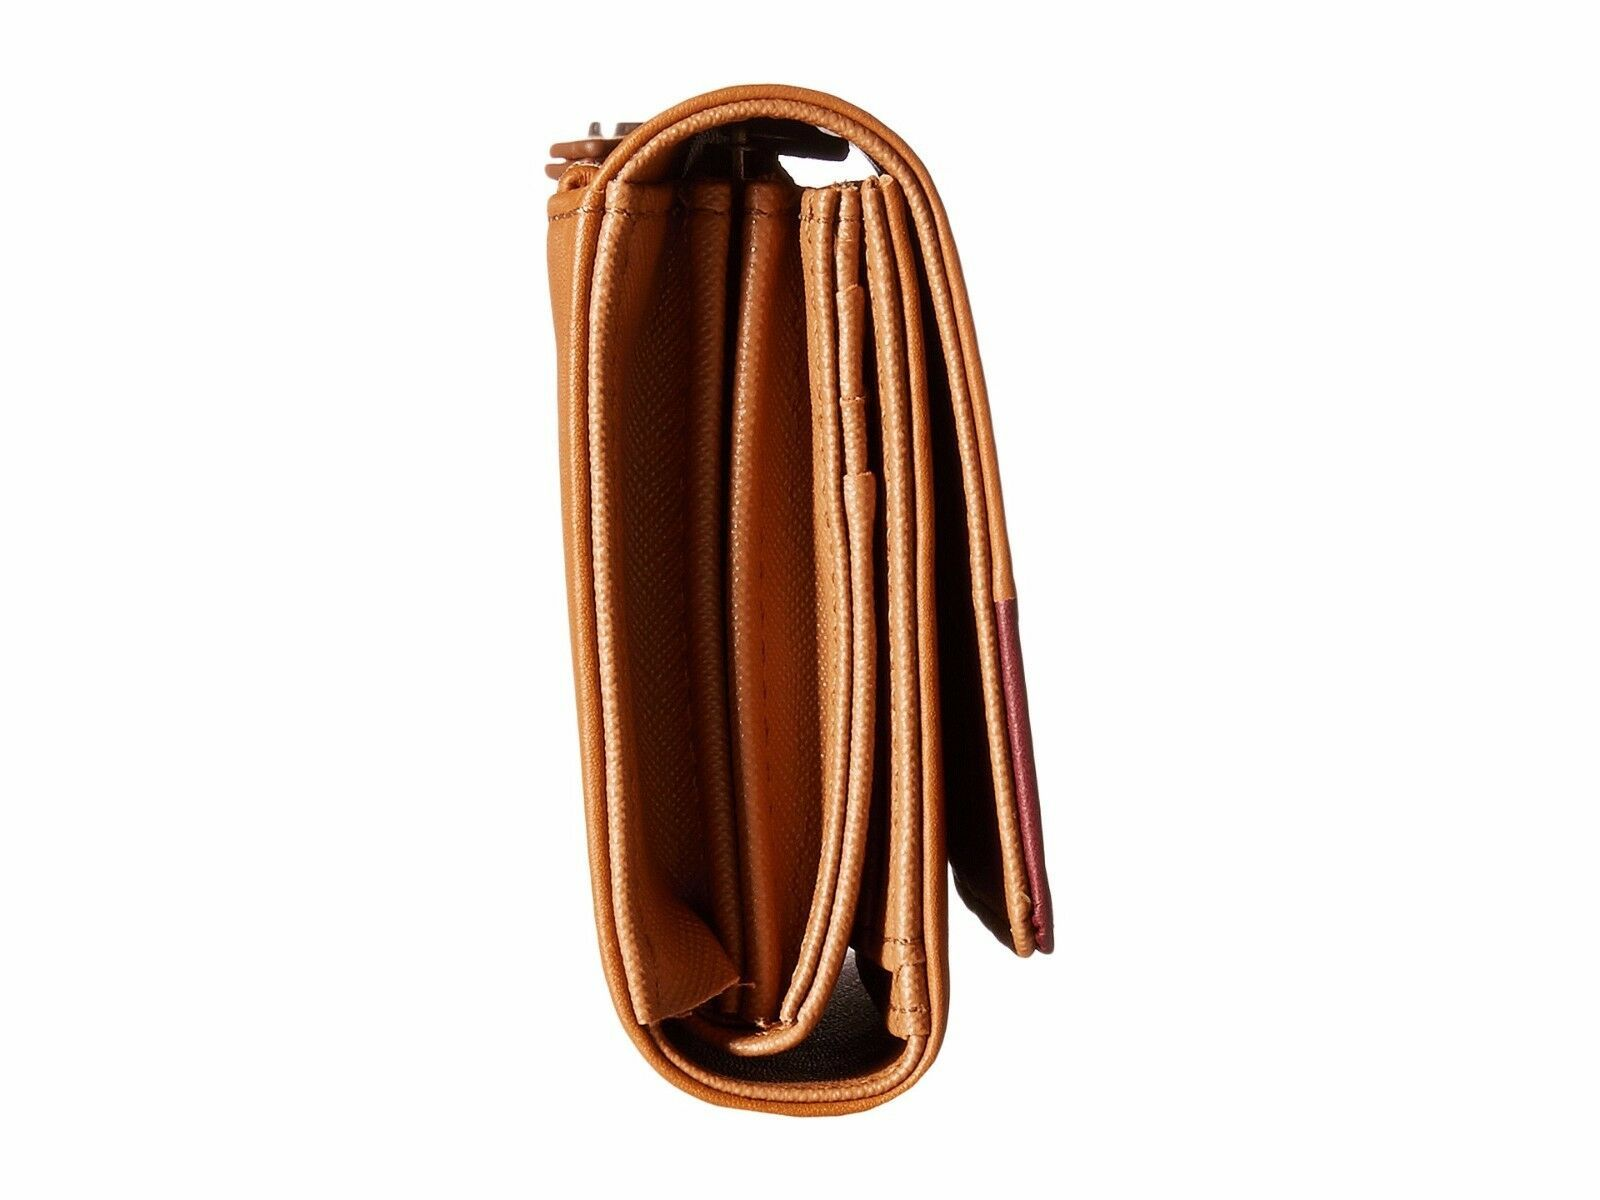 New Fossil Dawson Women Flap Leather Clutch Variety Color image 8